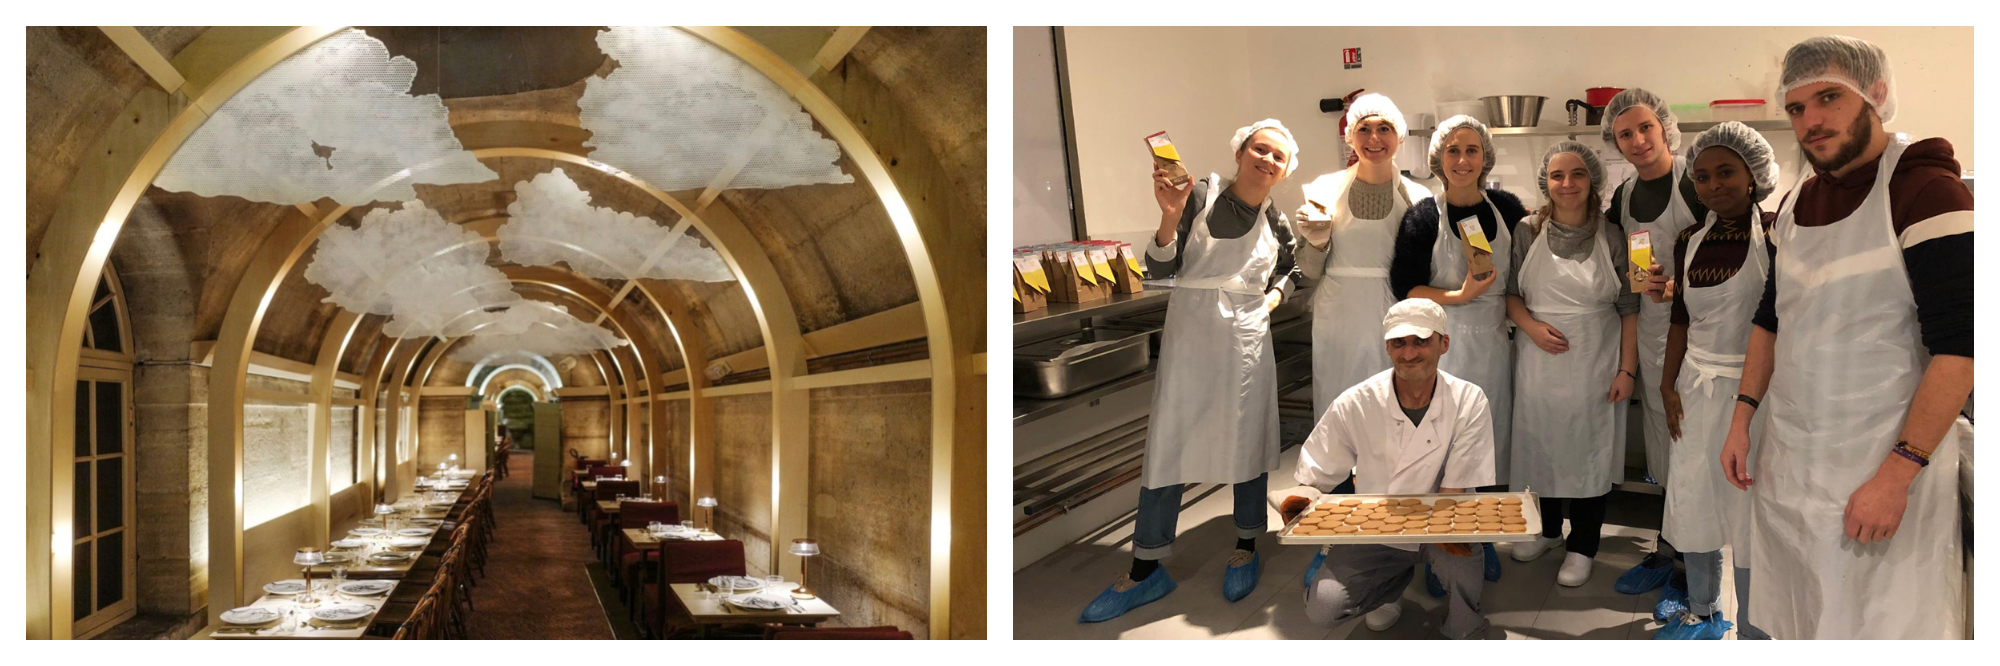 The vaulted interior of a restaurant with floating cloud artworks hanging from the roof (left). A group of people  dressed in chef whites in a kitchen holding a tray of cookies (right).